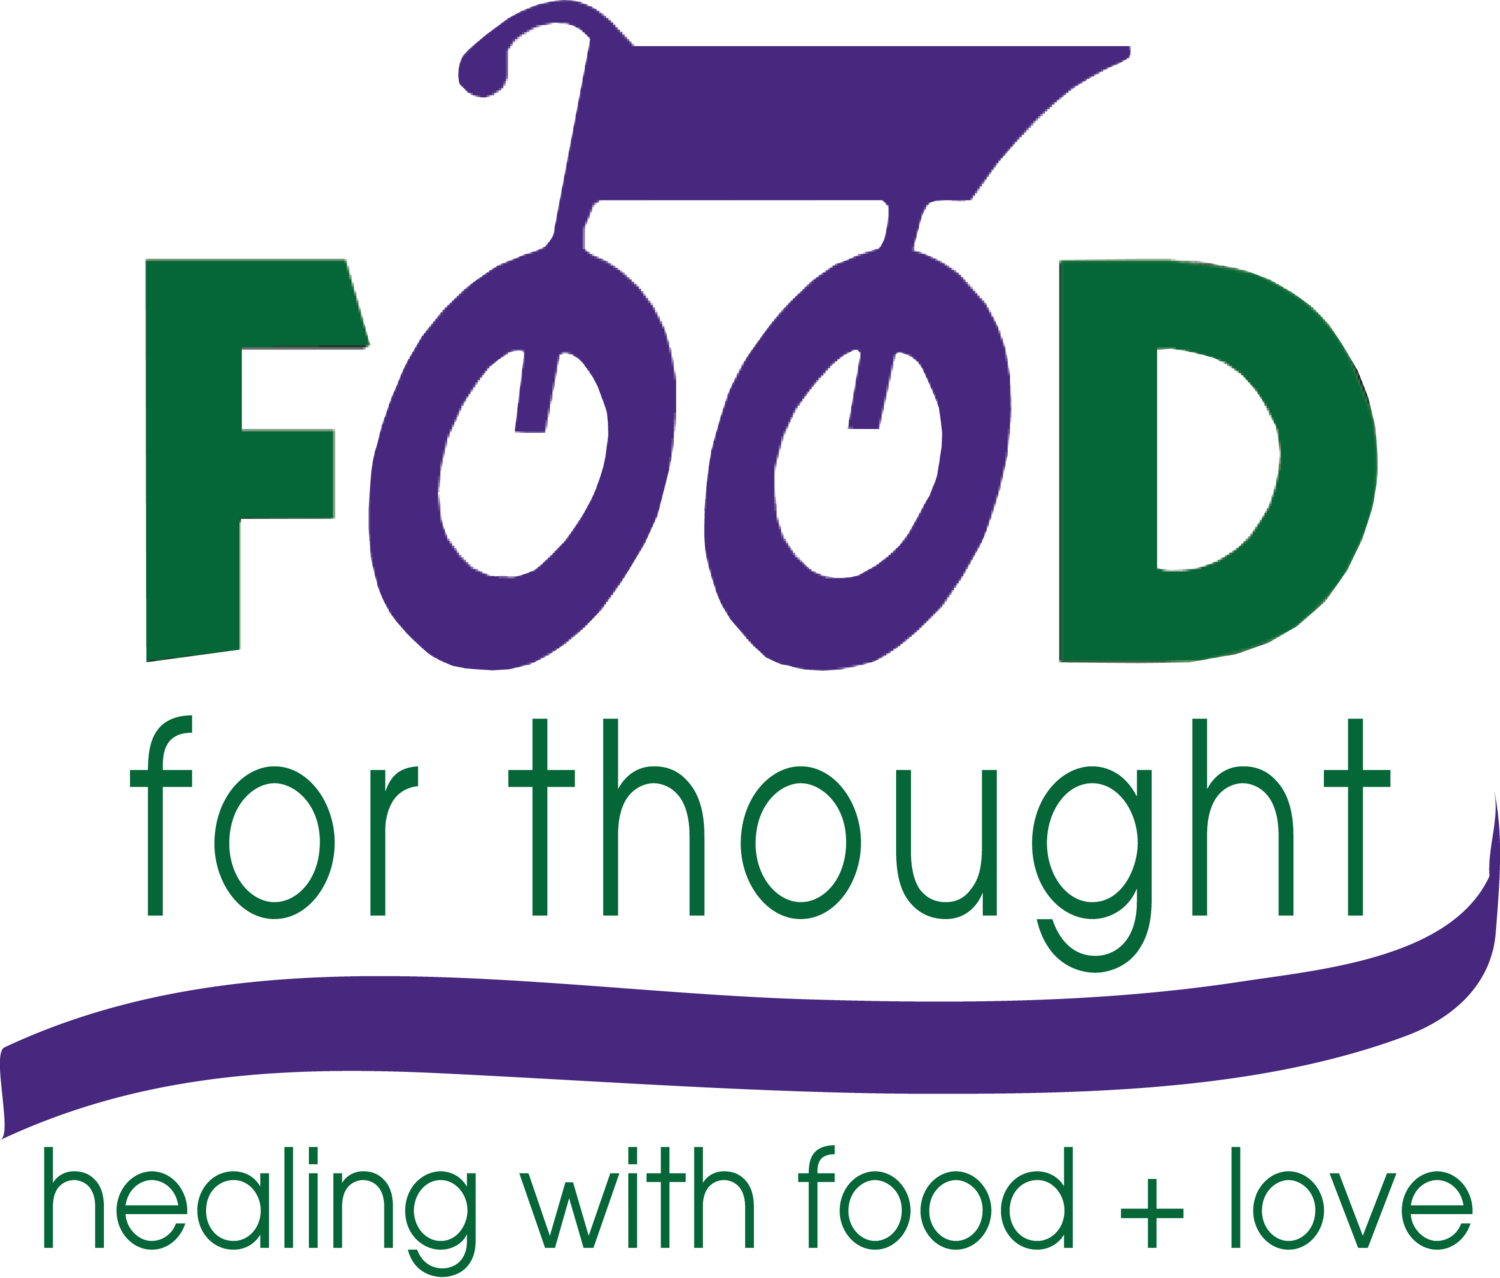 Food For Thought Food Bank